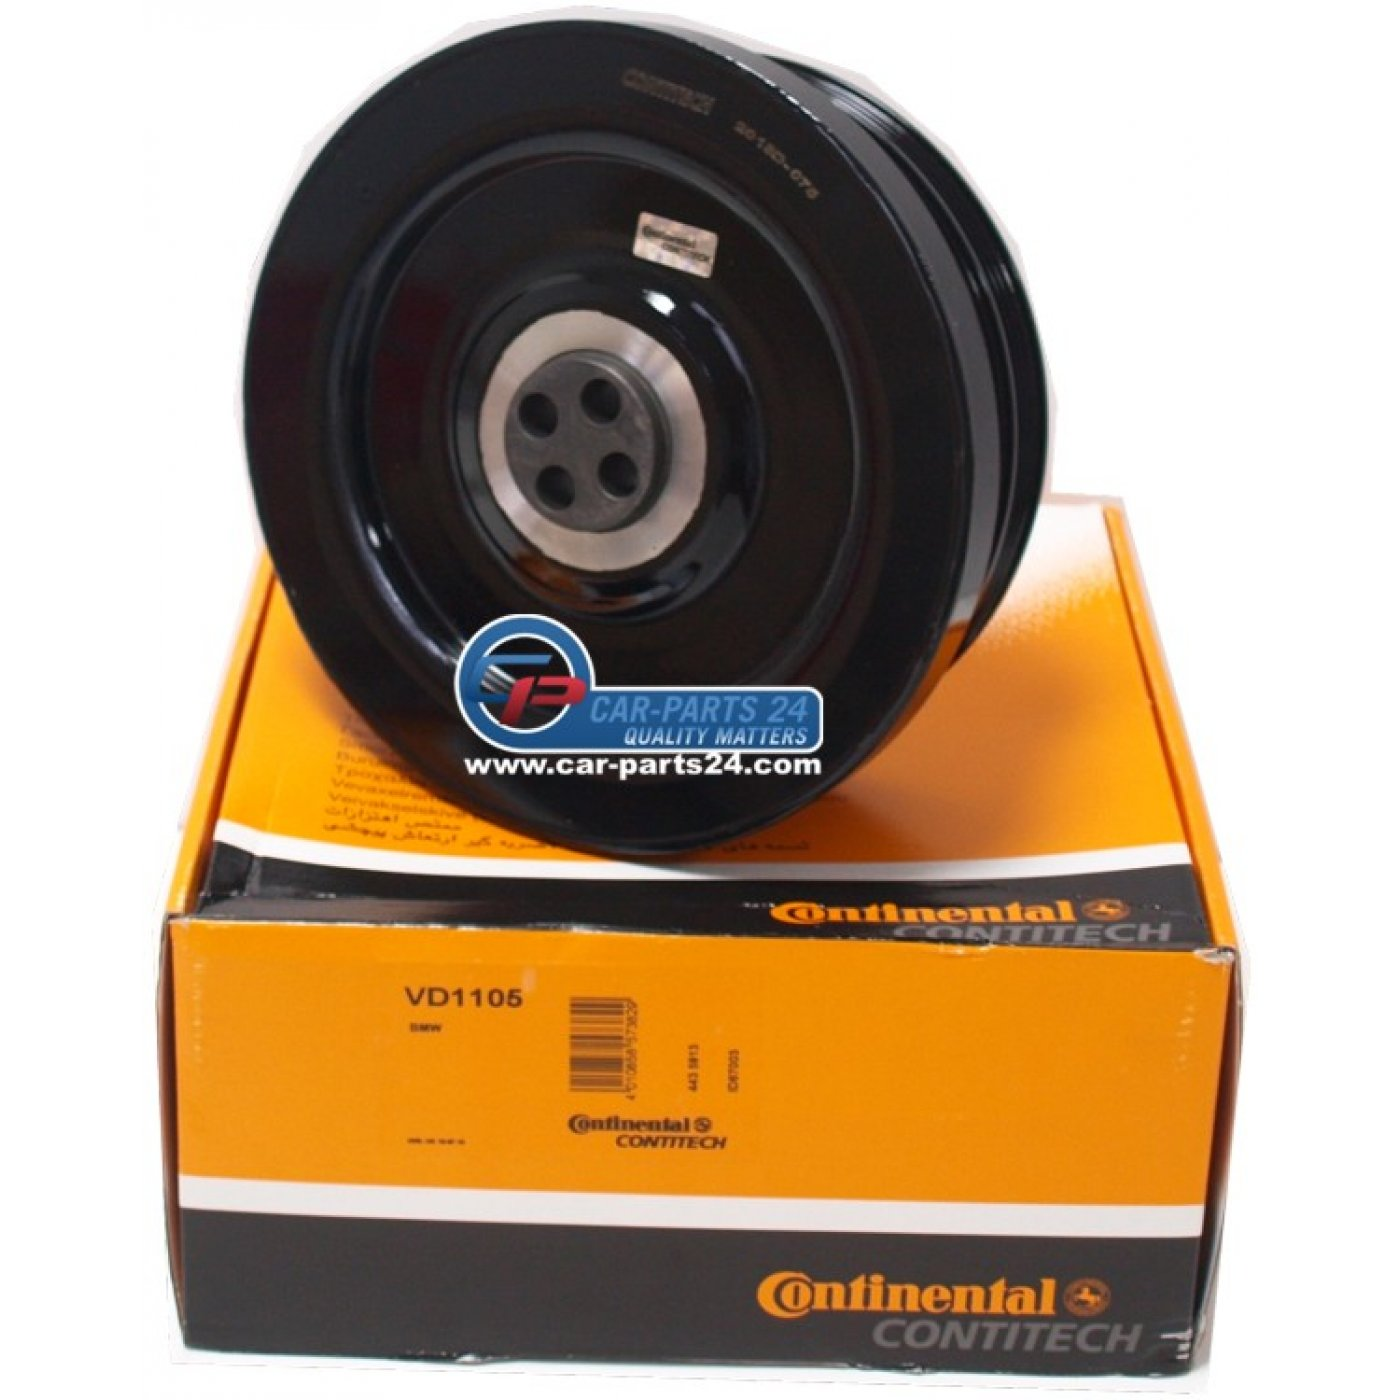 Contitech Vd1105 Crankshaft Belt Pulley Vibration Damper